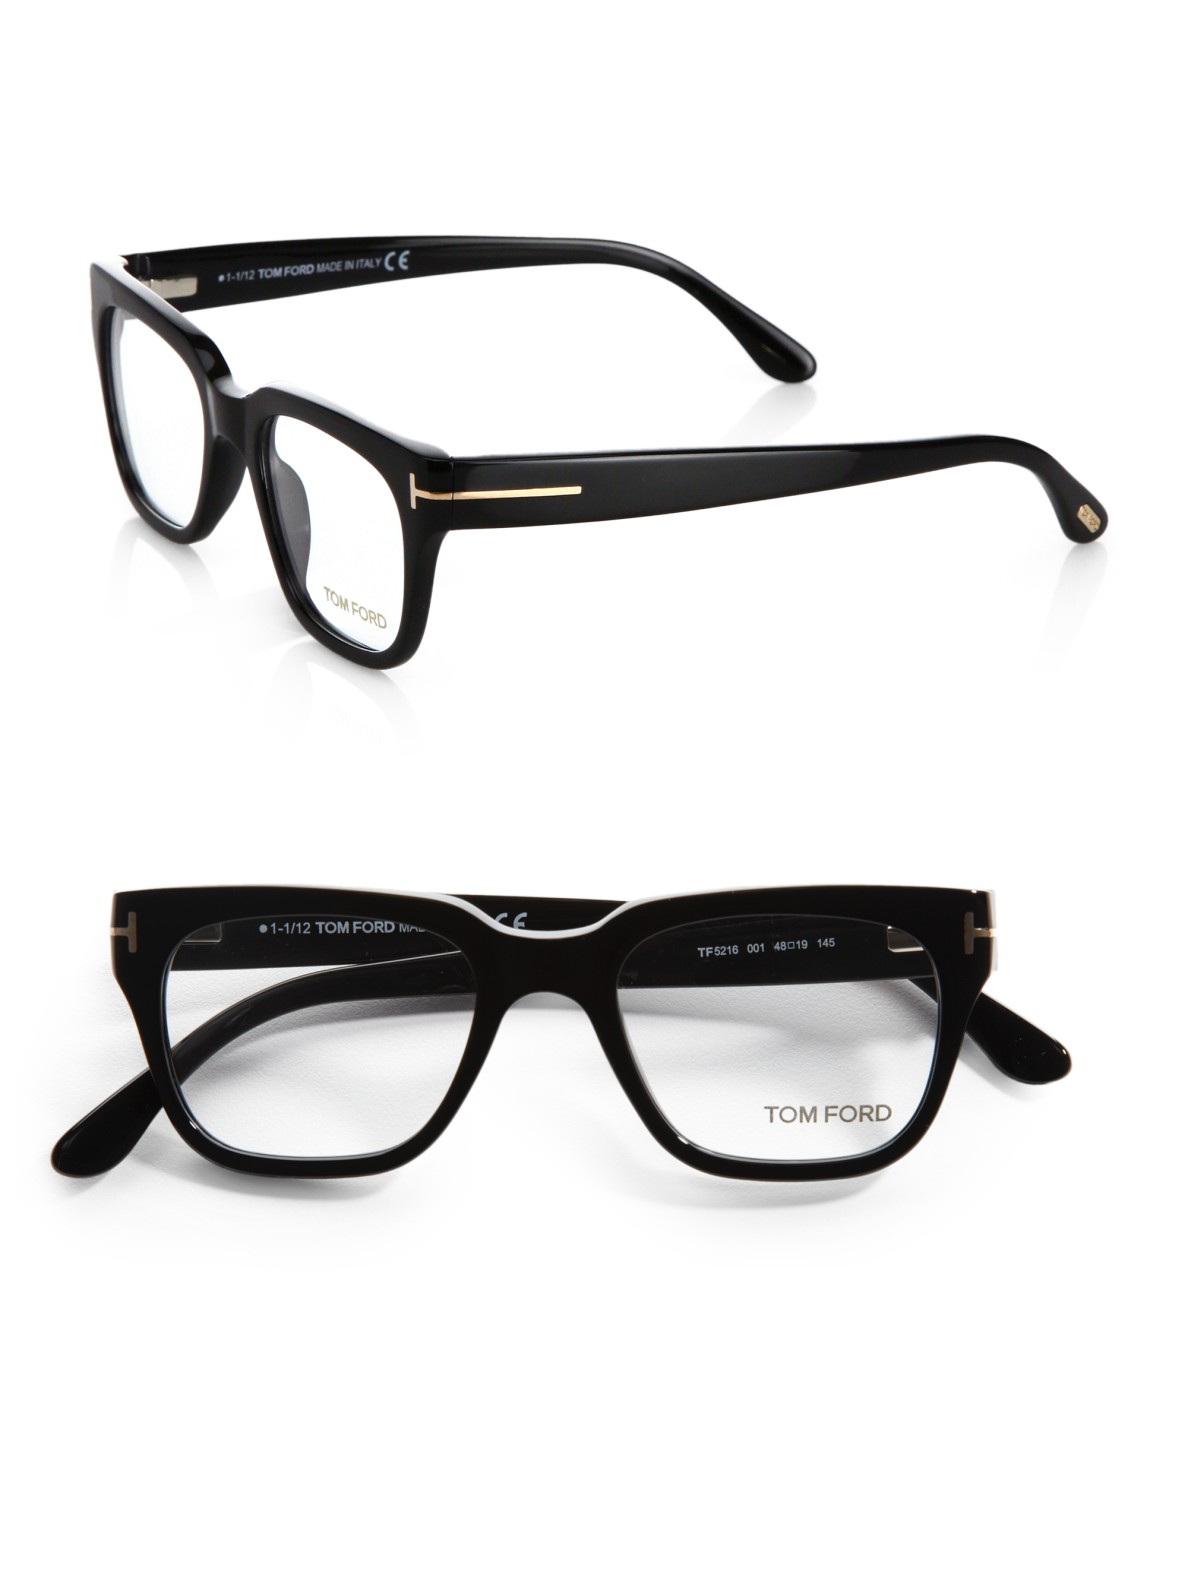 Lyst - Tom Ford Plastic Optical Frames in Black for Men